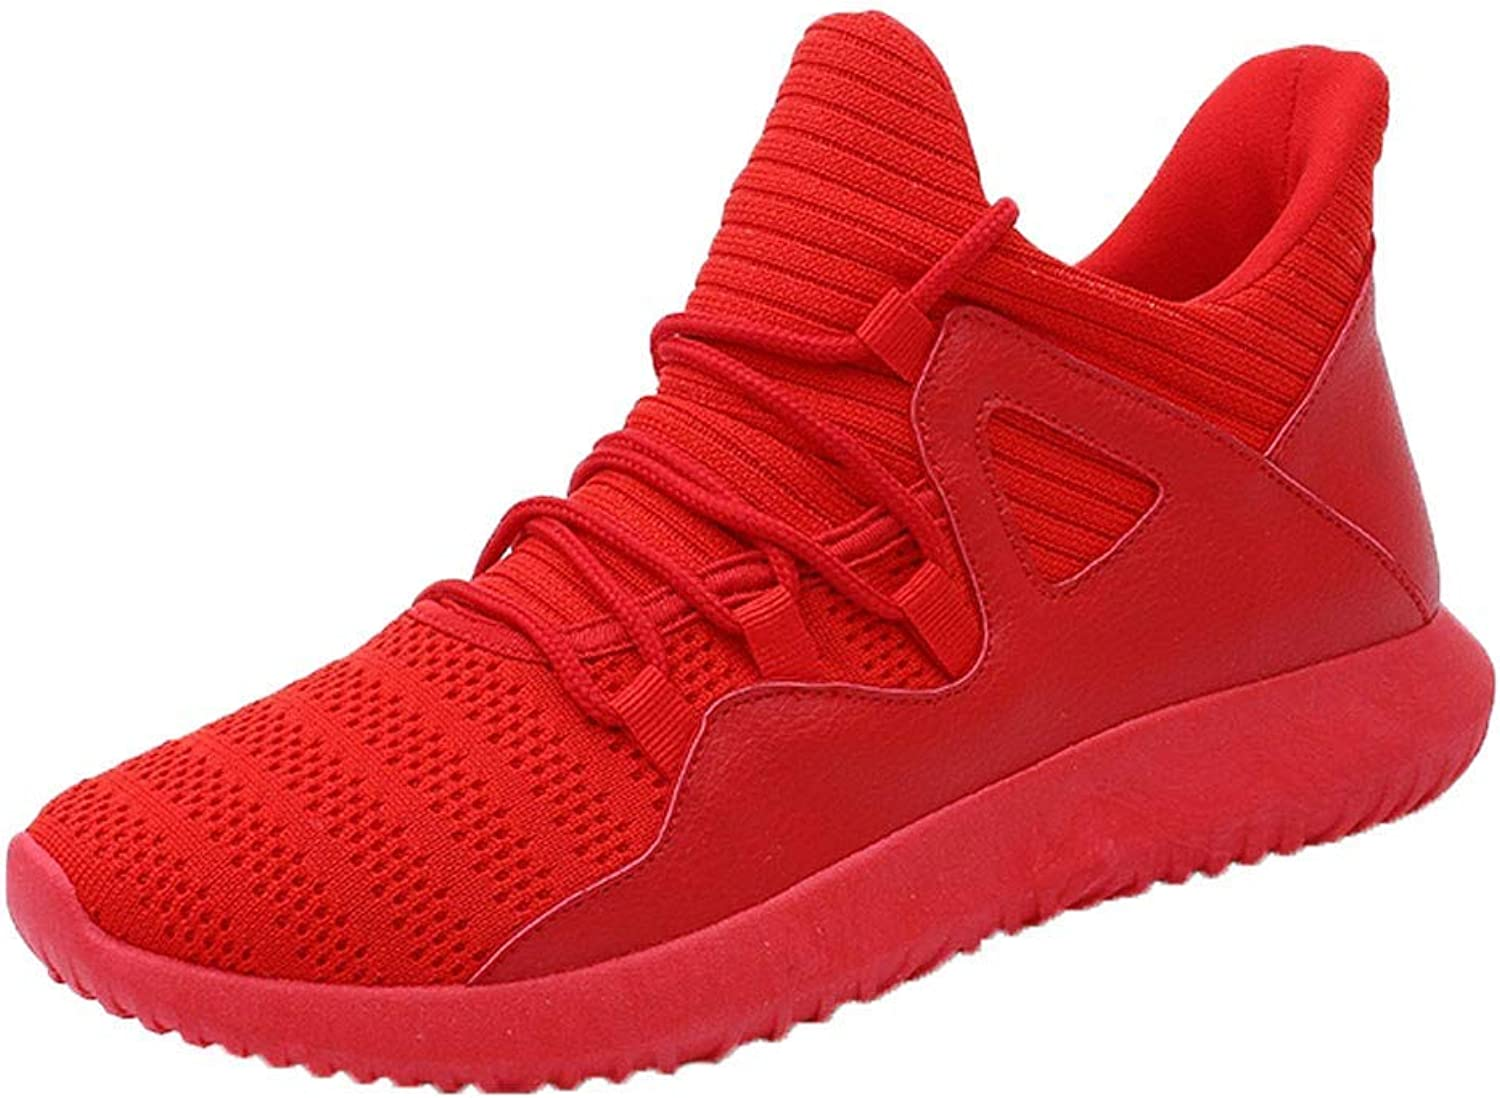 JaHGDU Mens Red Solid color Personality Sneakers Lace Up Sports Running Gym Fitness Training Fashion Comfort Wild Daily Casual Stylish Hipster shoes